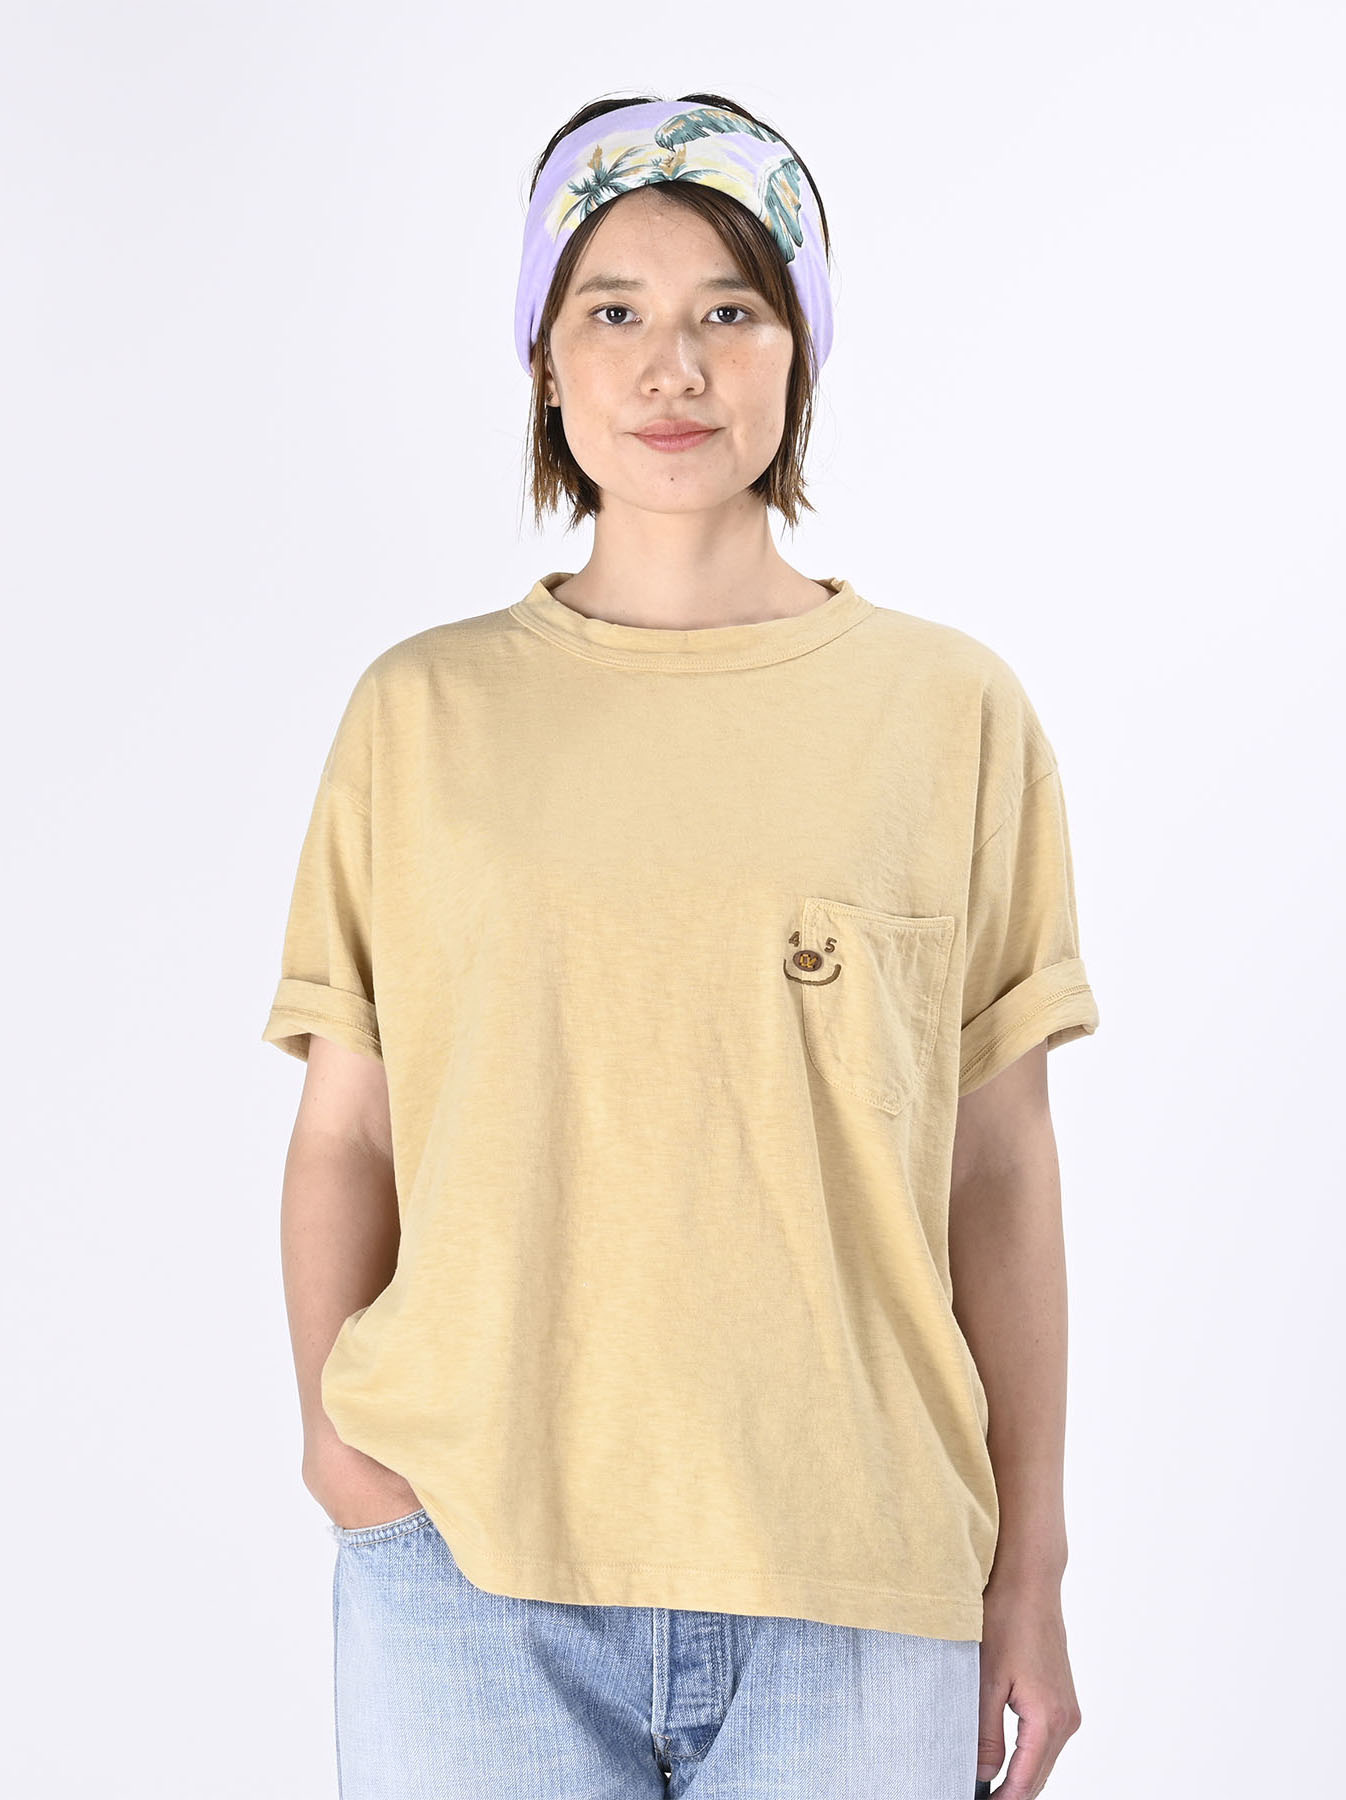 Smile R Embroidery 908 Ocean T-shirt (0621)-4